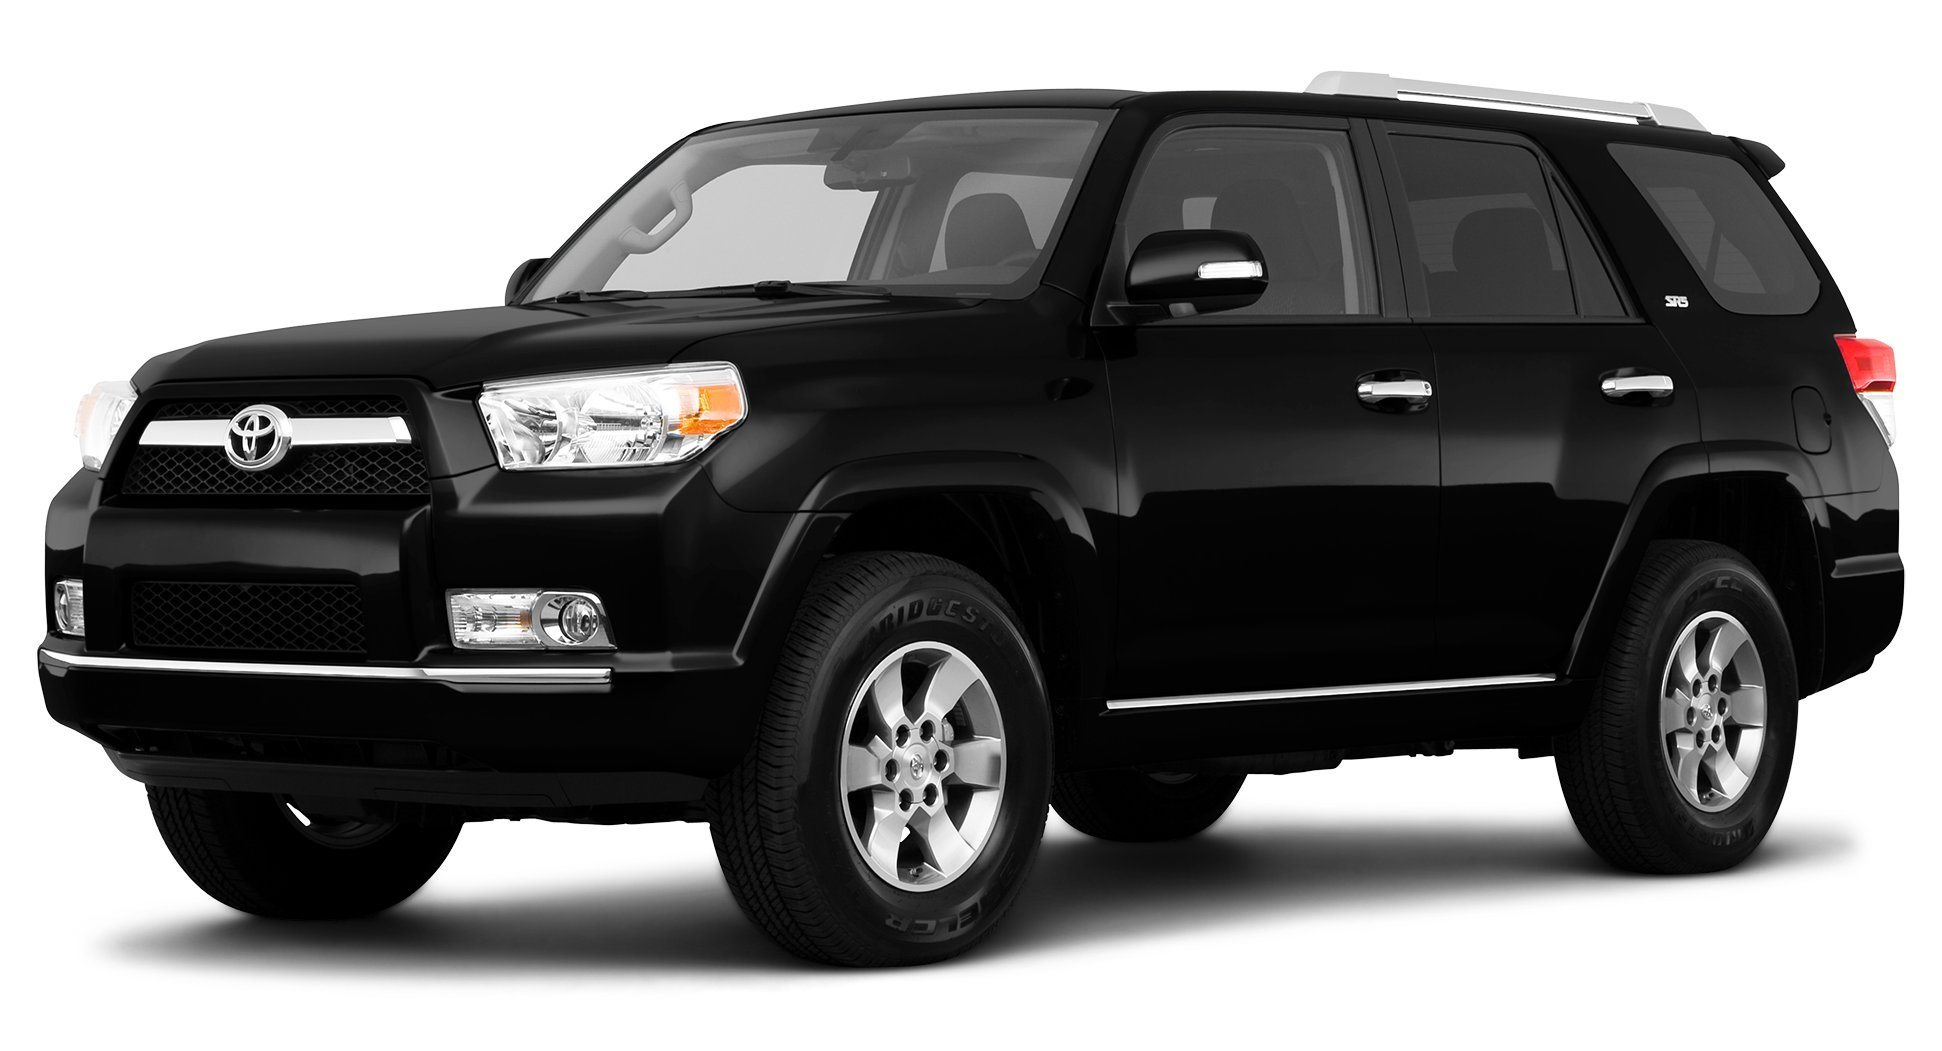 2010 ford escape reviews images and specs vehicles. Black Bedroom Furniture Sets. Home Design Ideas